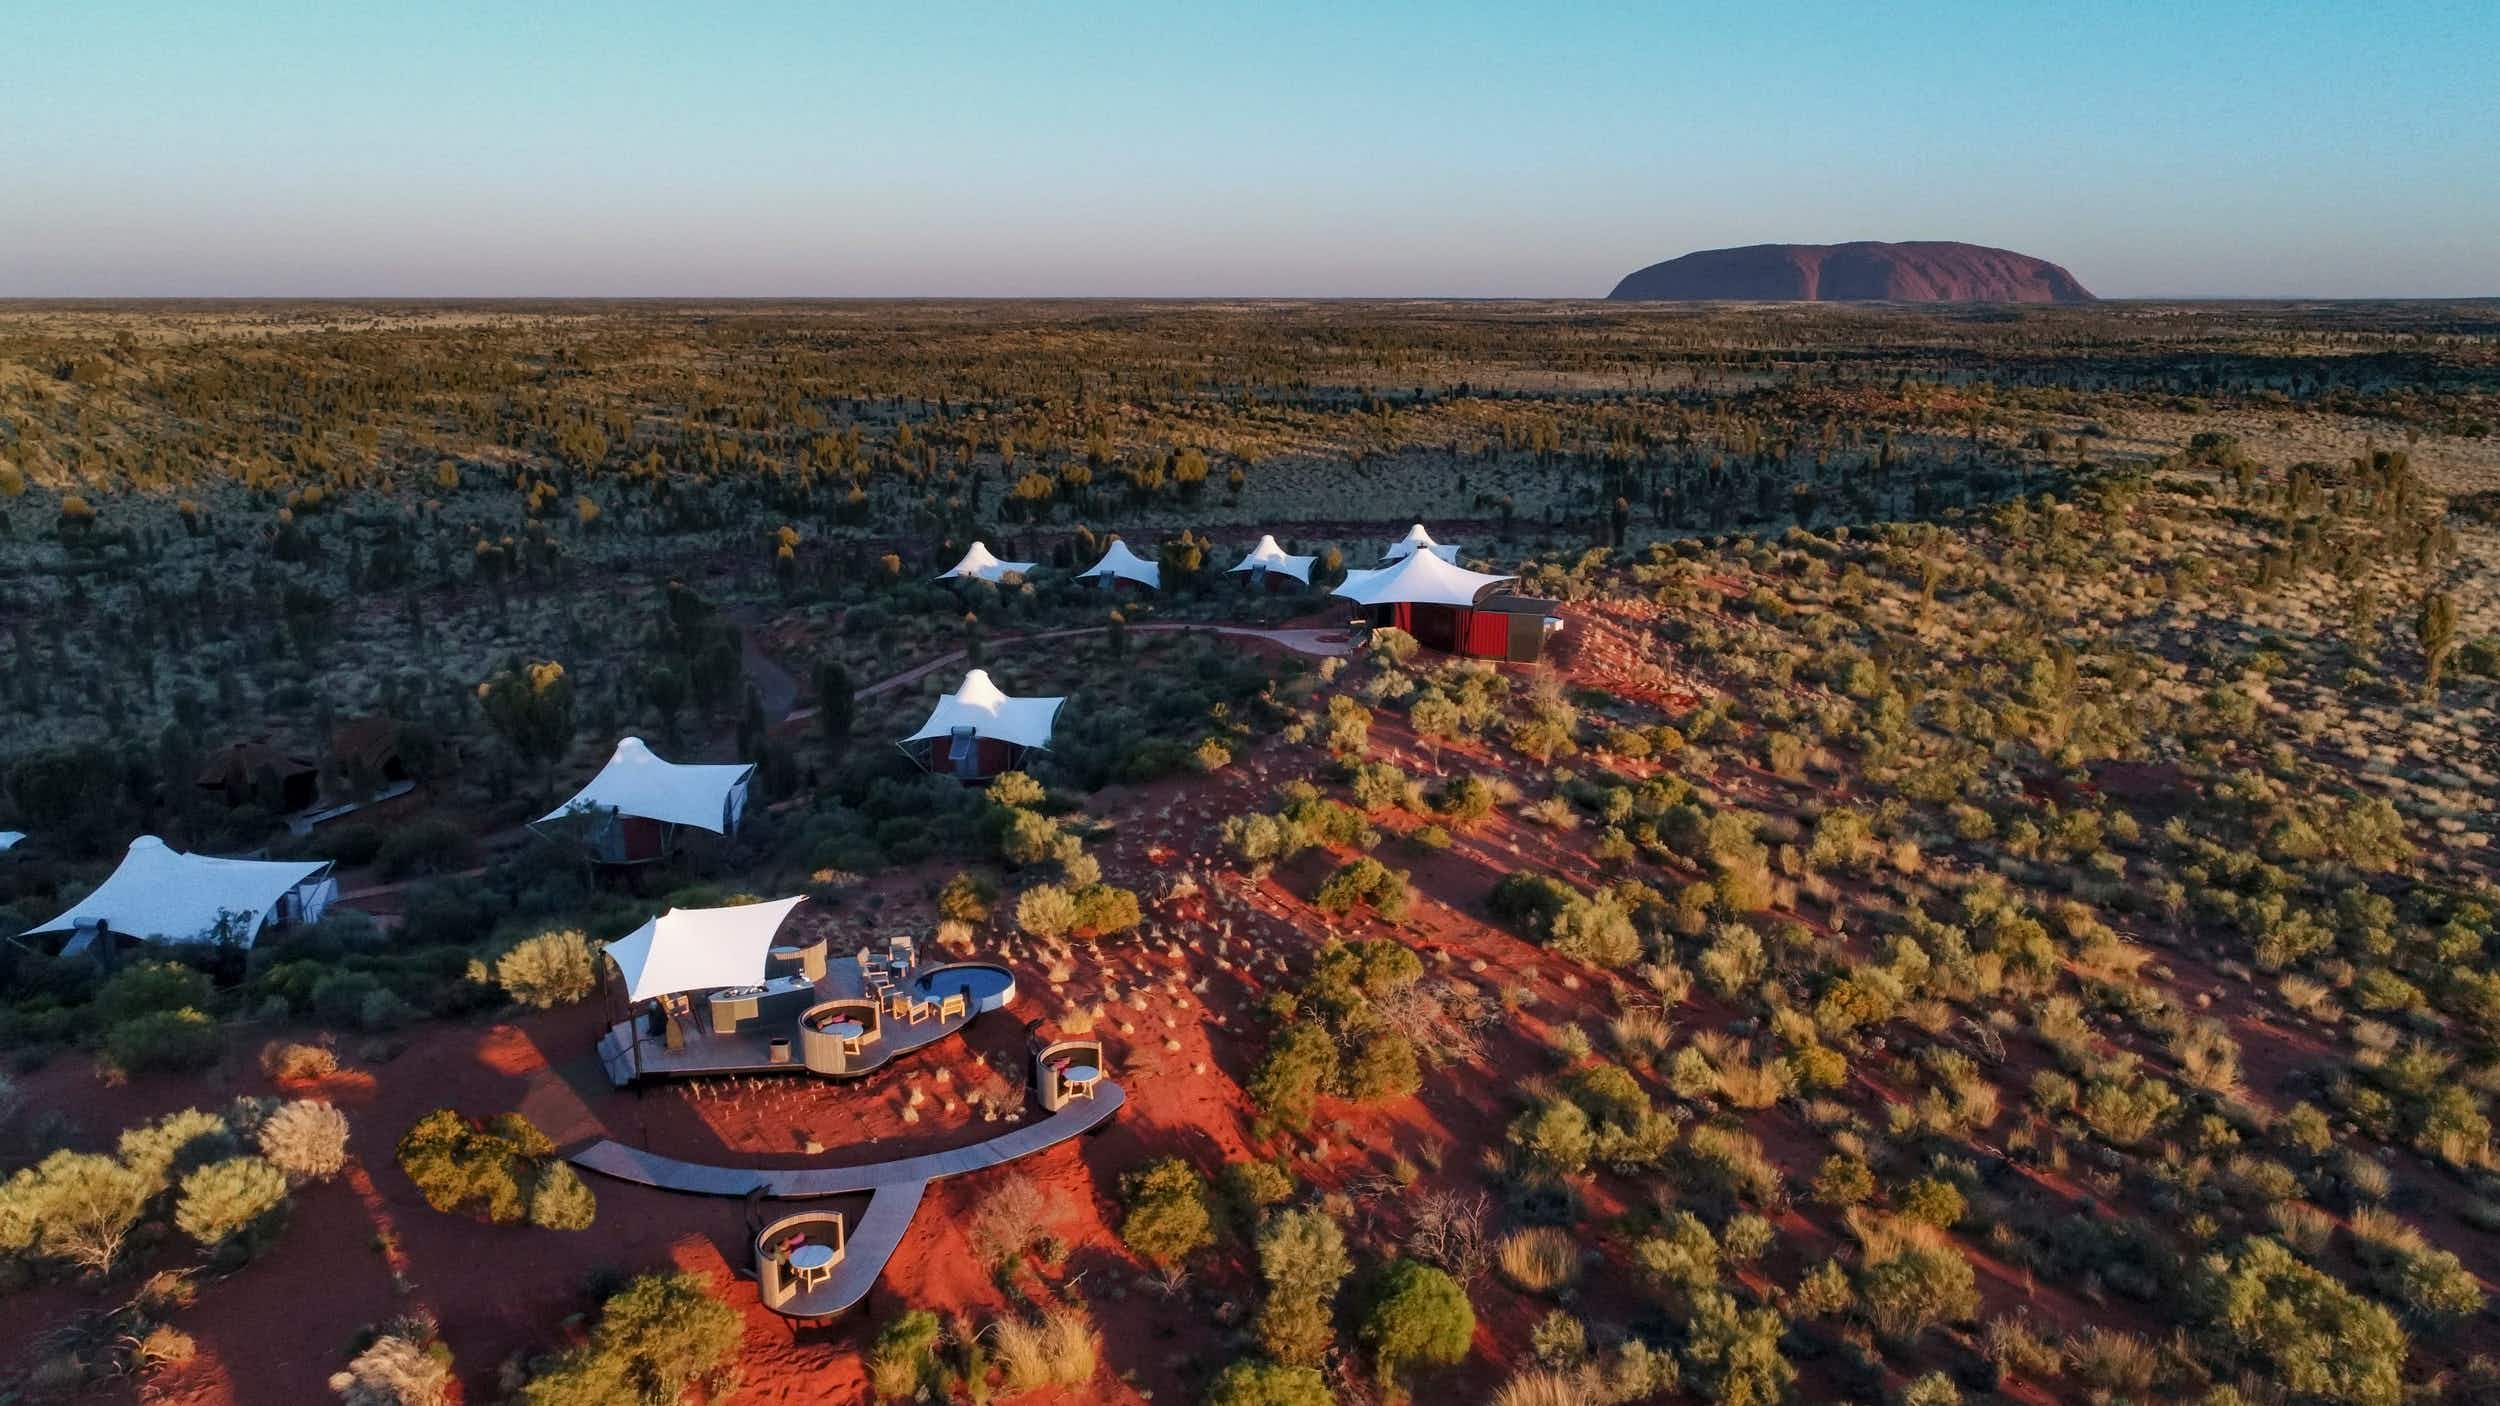 This newly-relaunched luxury outback camp in Australia offers views of Uluru